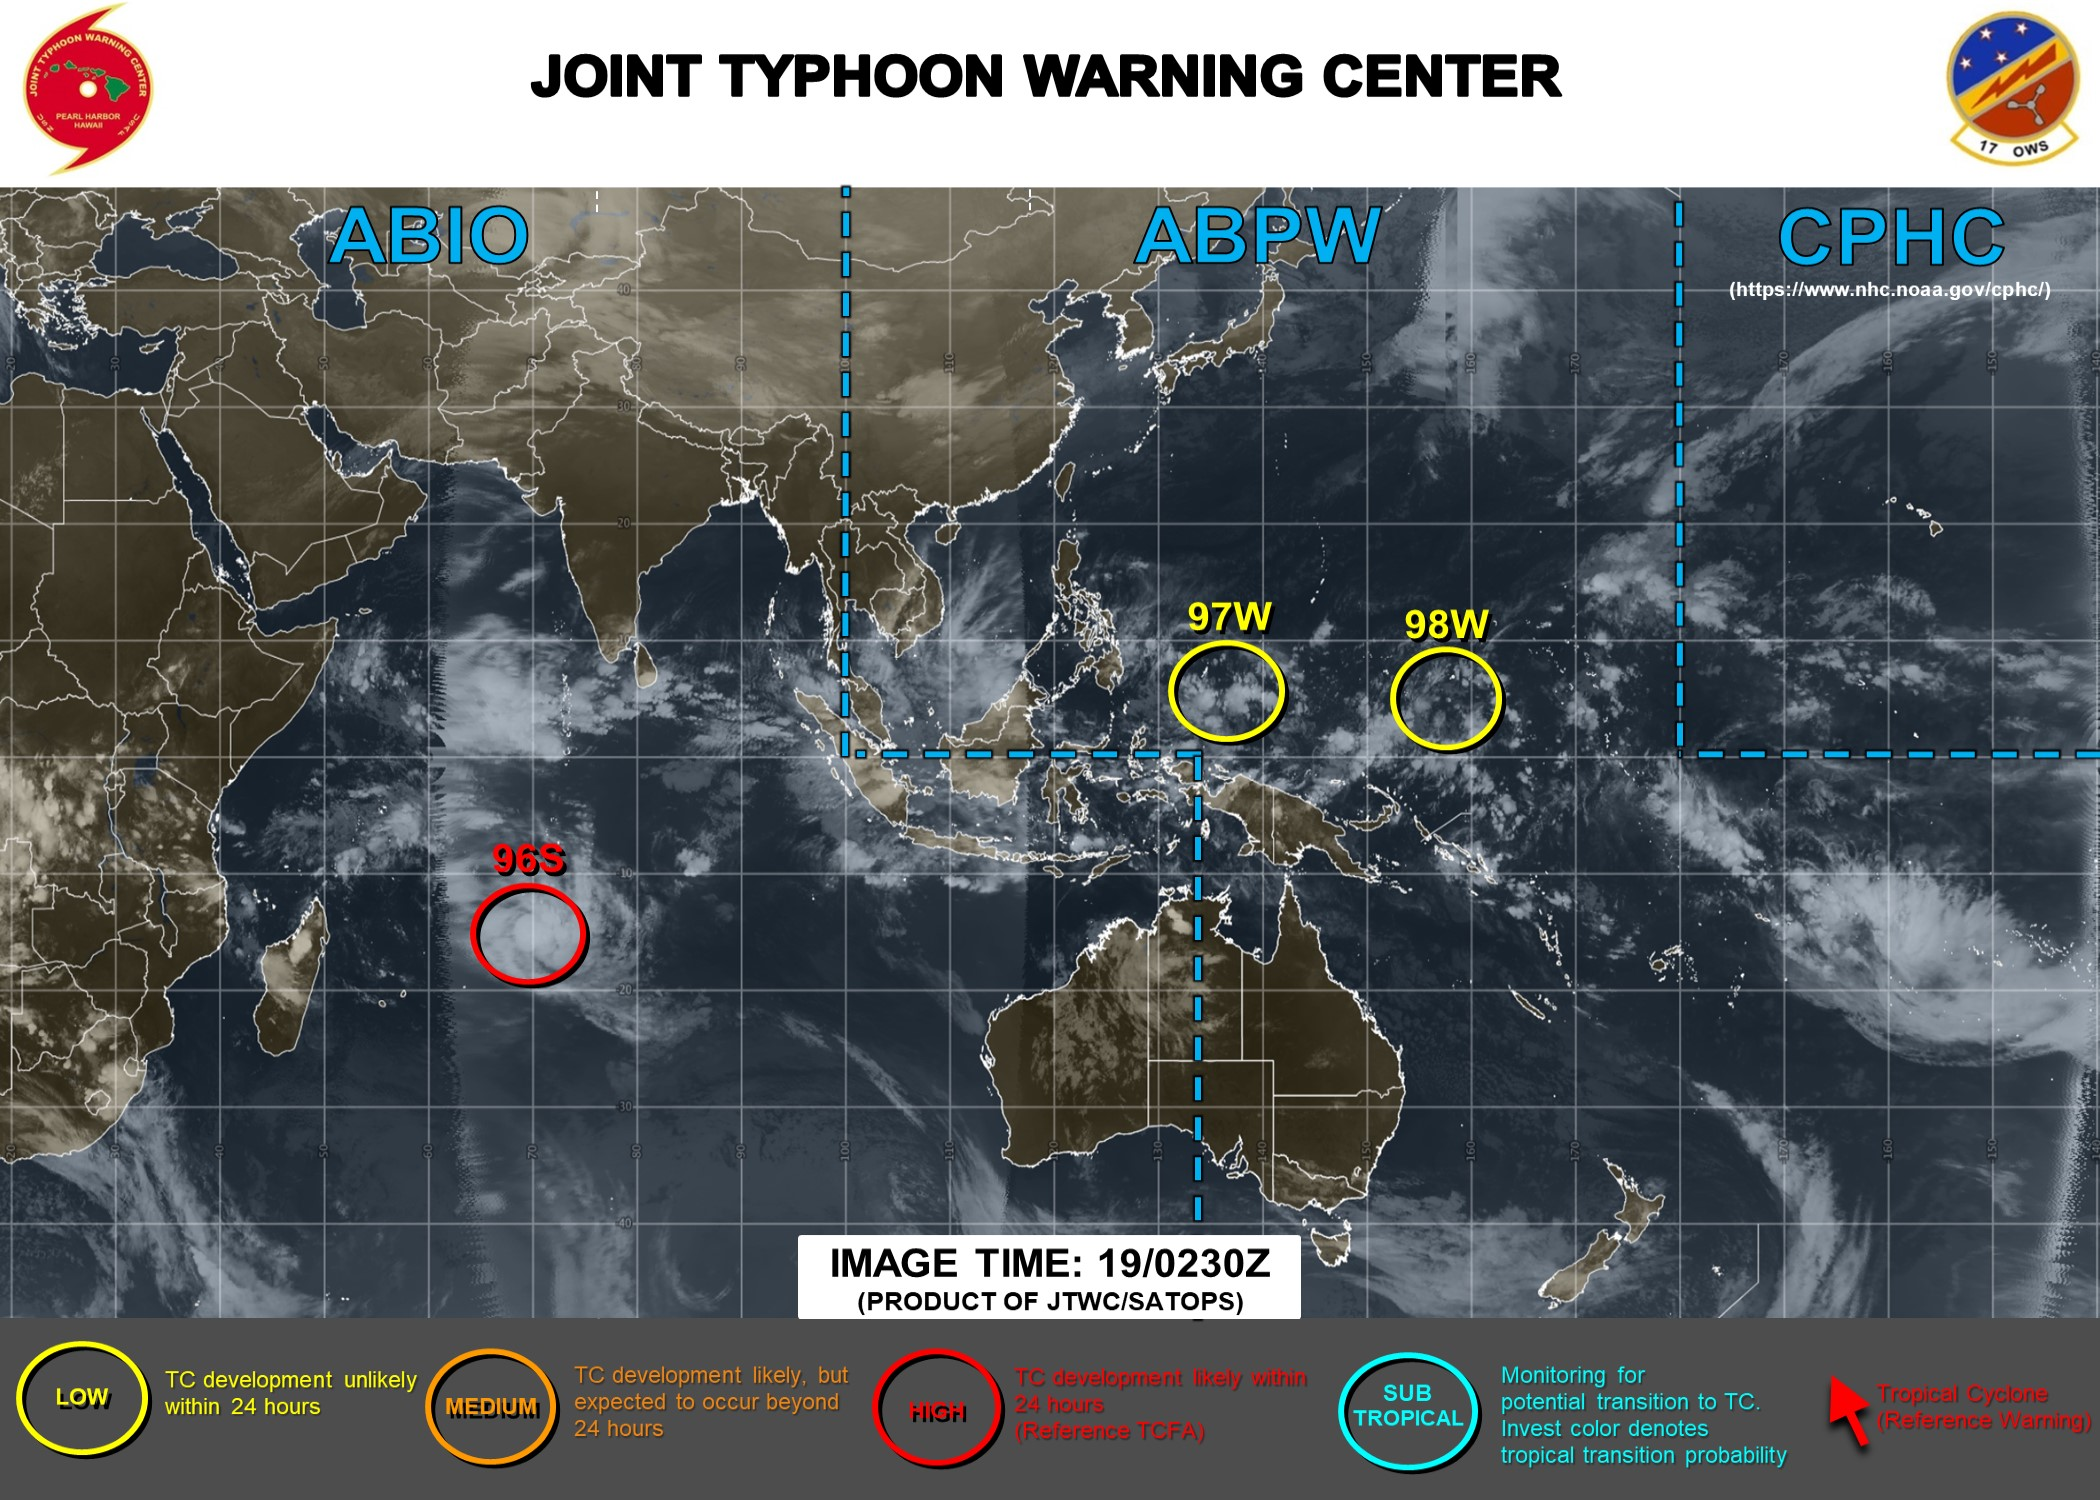 INVEST 96S: Tropical Cyclone Formation Alert(TCFA)